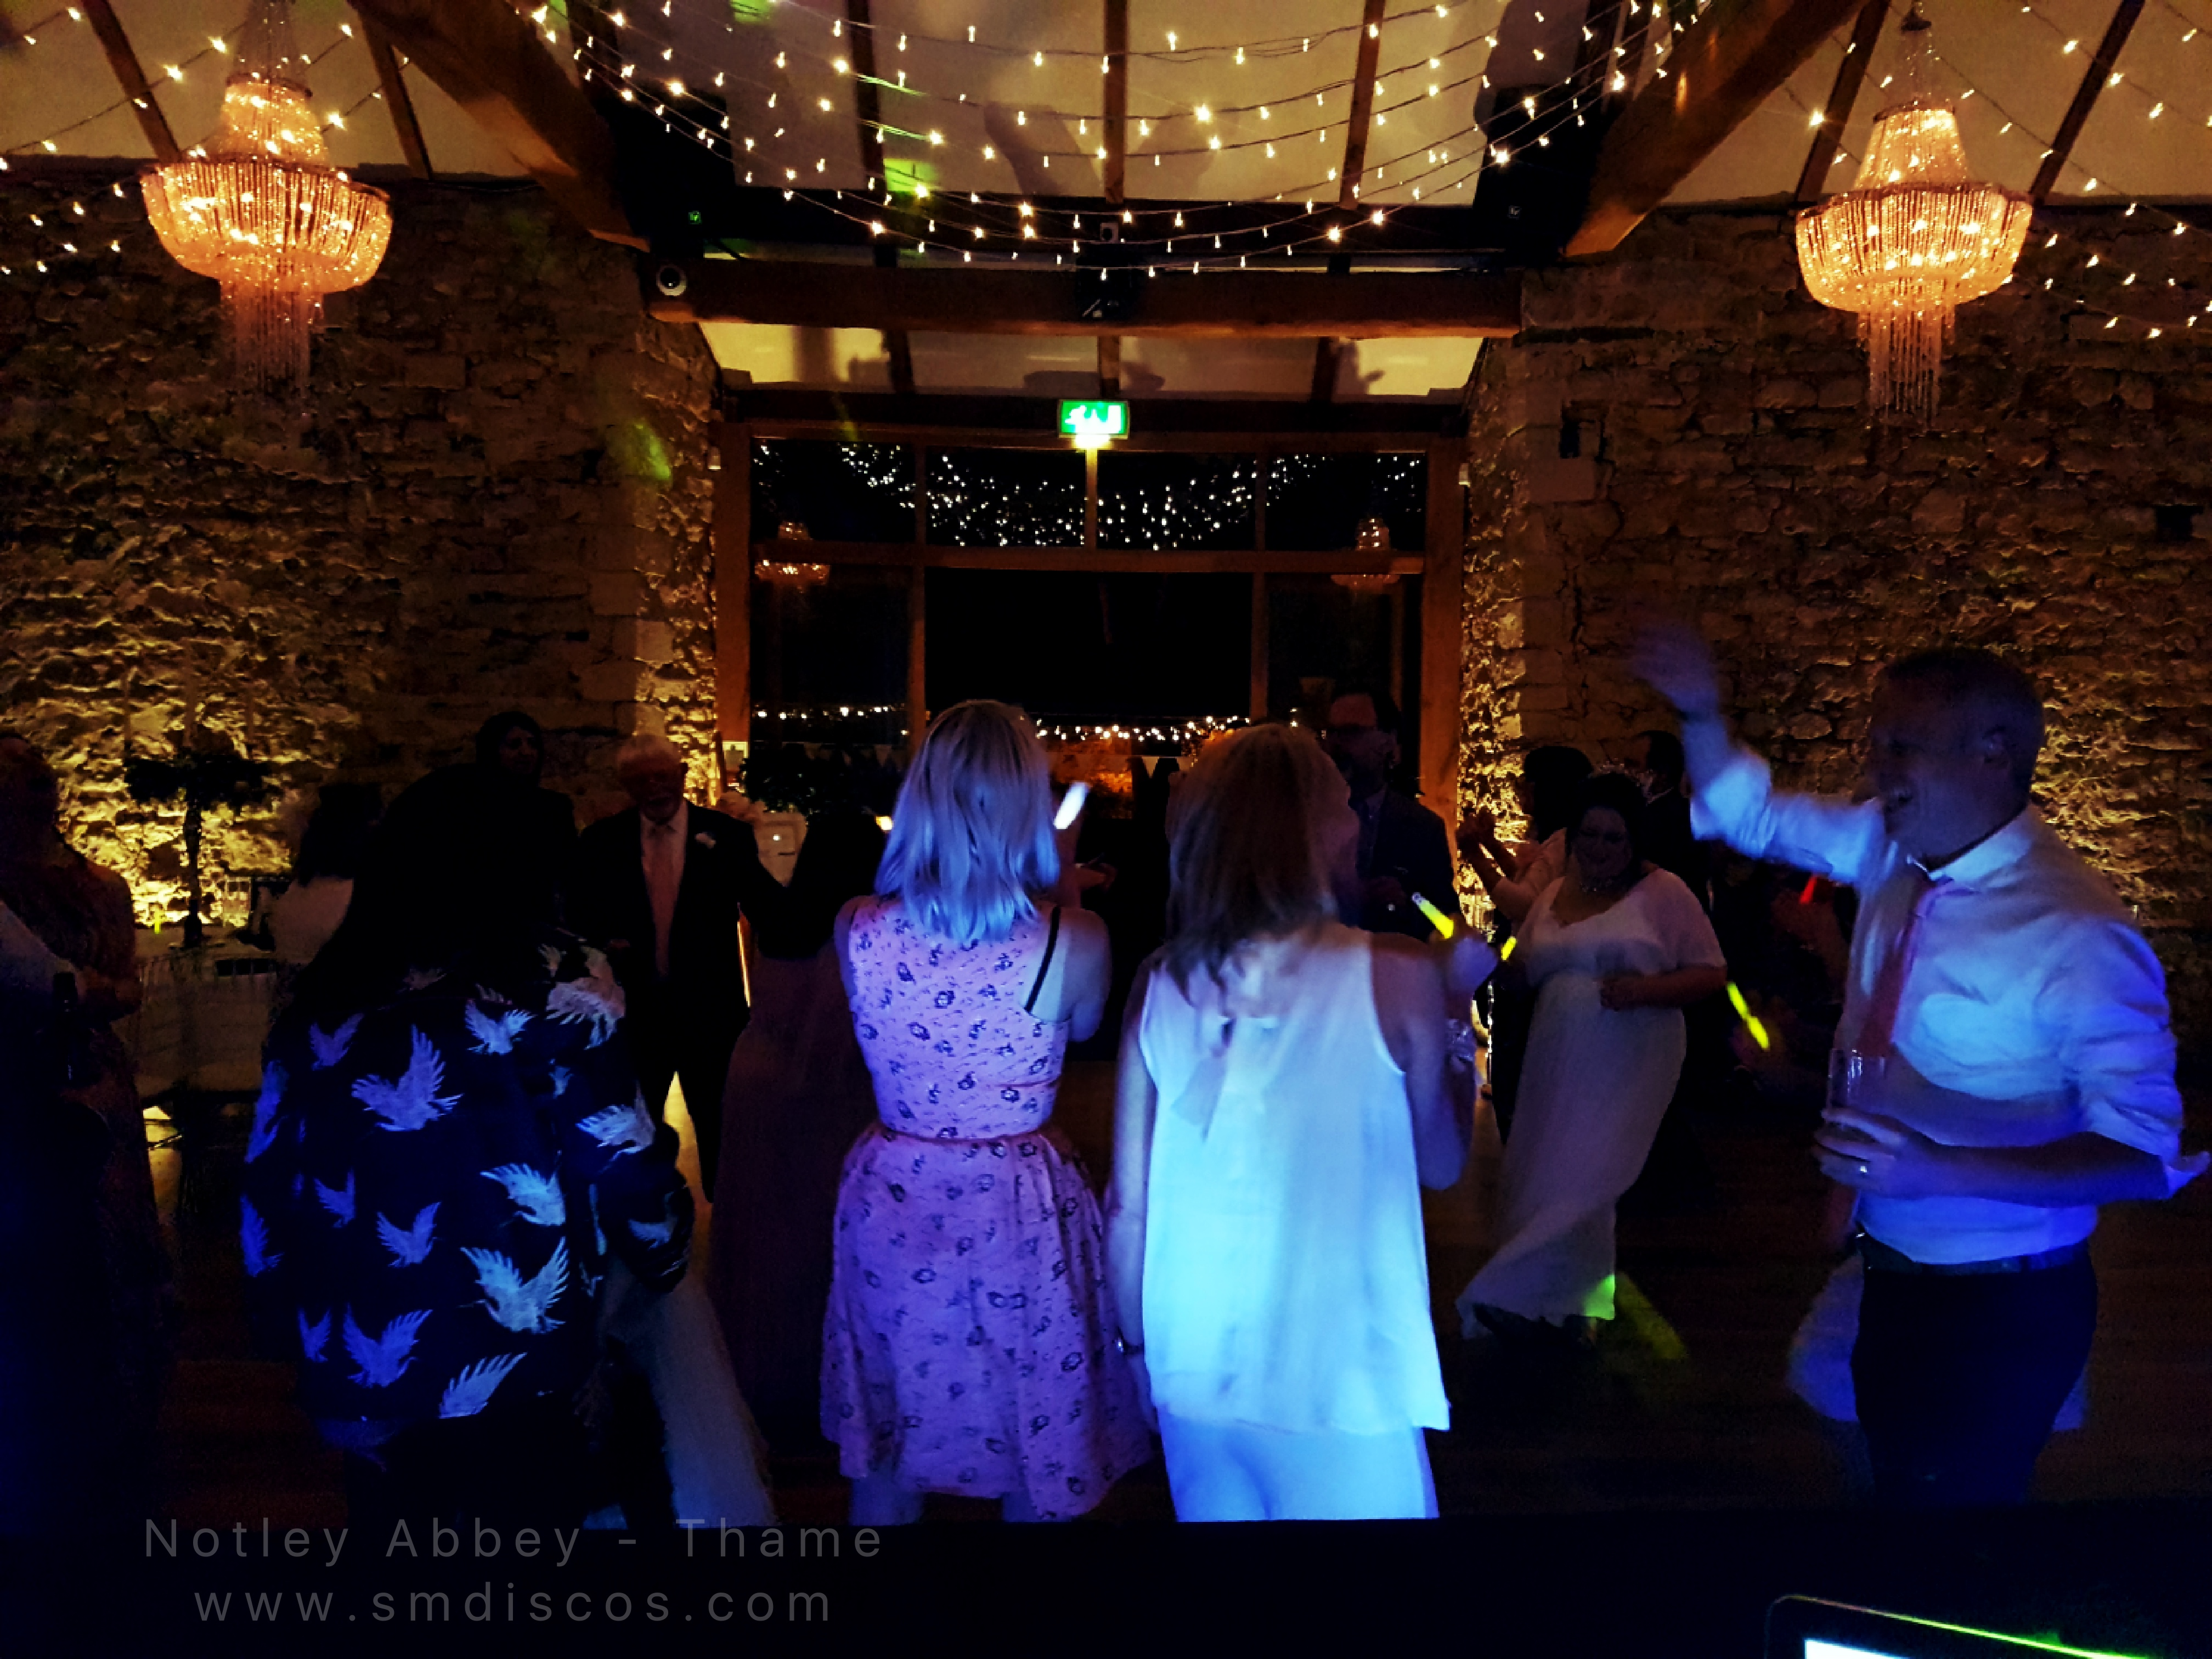 Wedding Notley Abbey